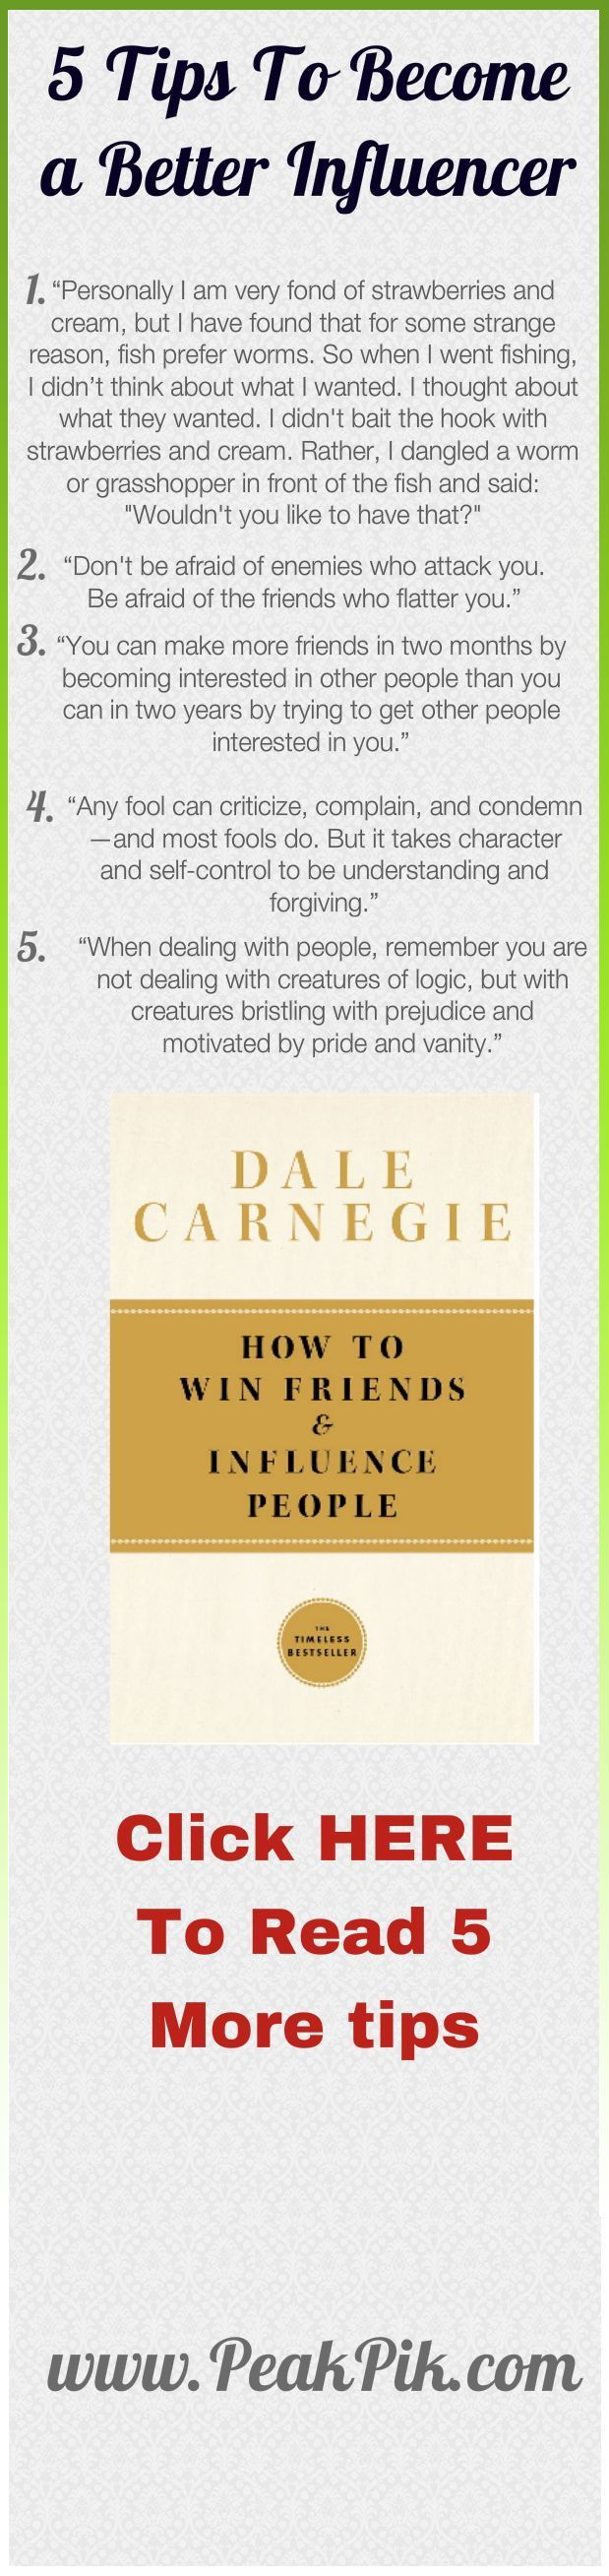 Daily Tips And Motivation   Dale Carnegie How To Win Friends And Influence People. These principles still work today